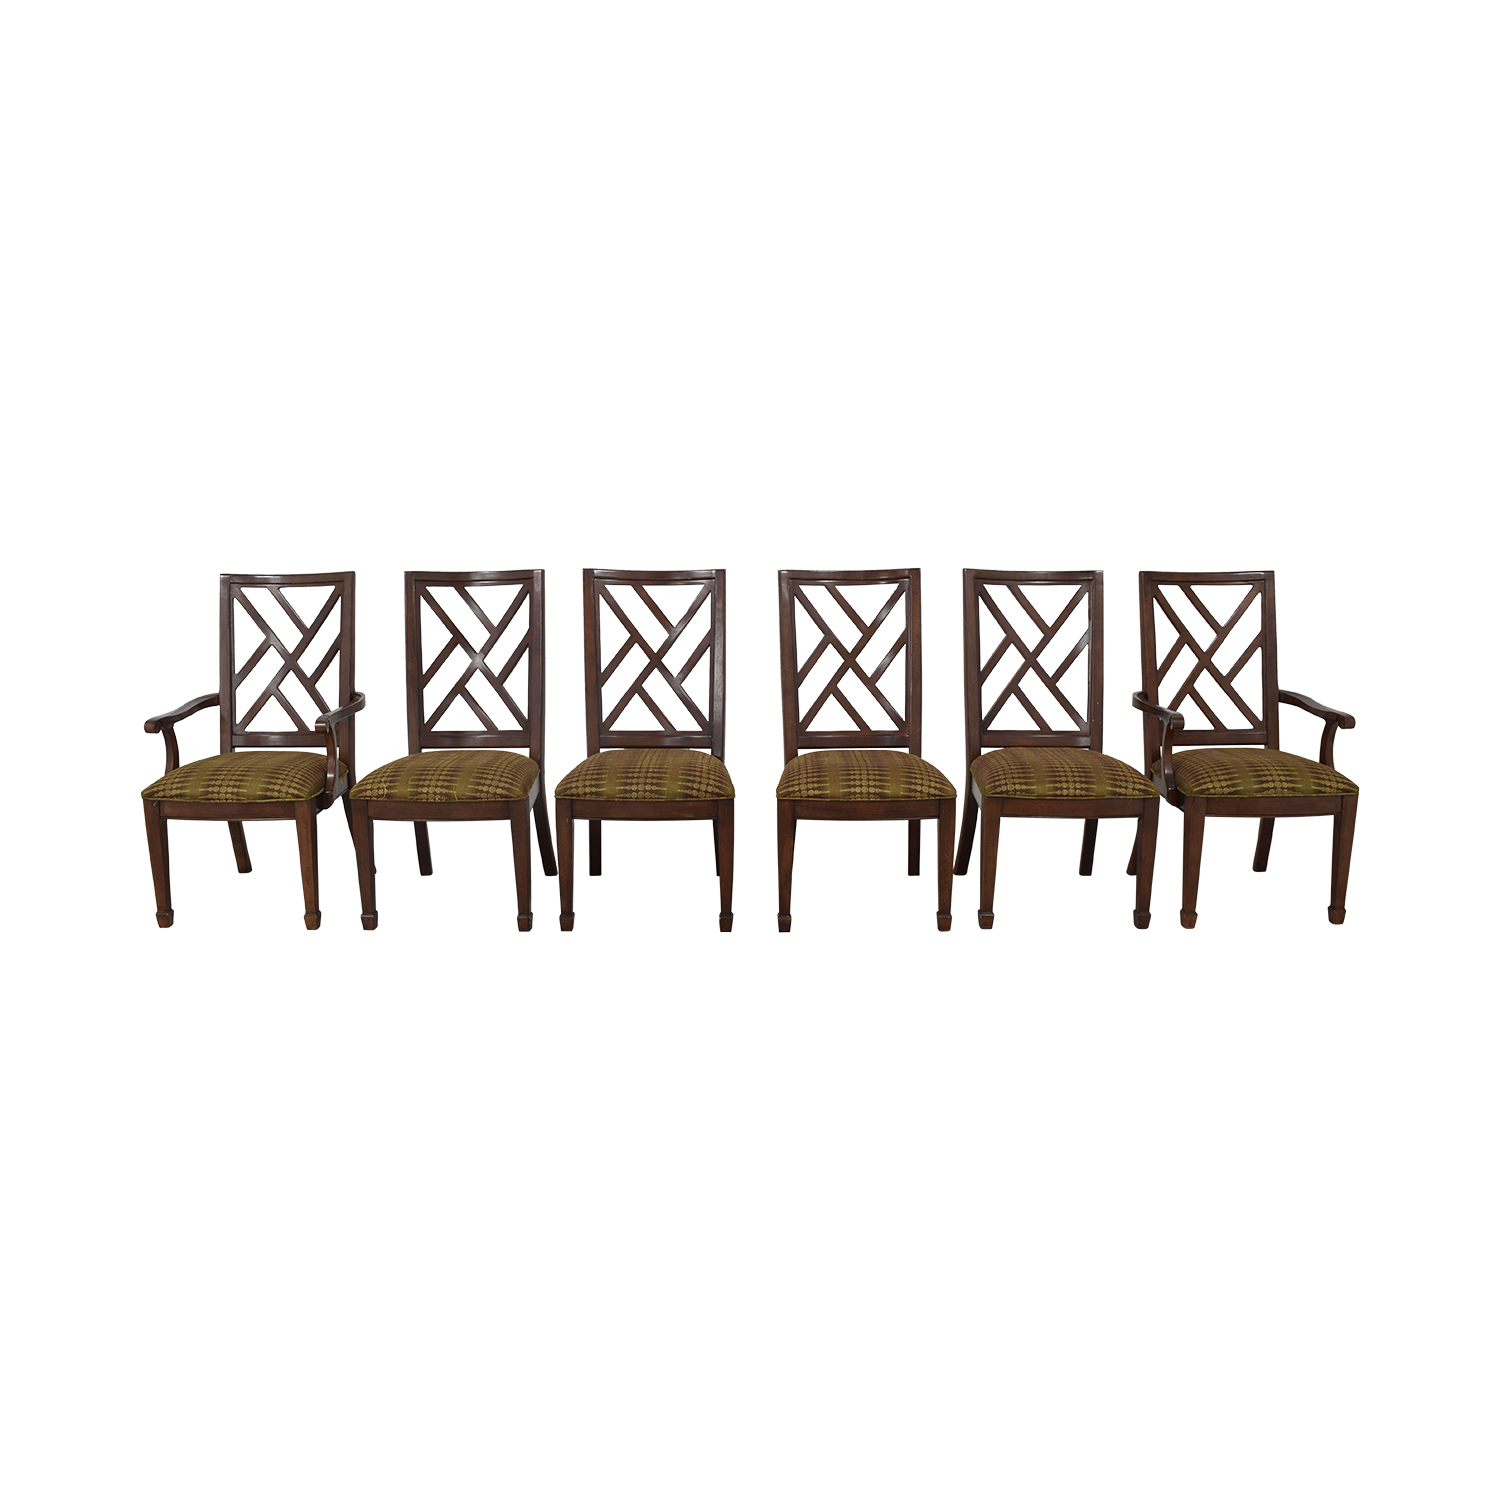 Bernhardt Bernhardt Modern Upholstered Dining Chairs used